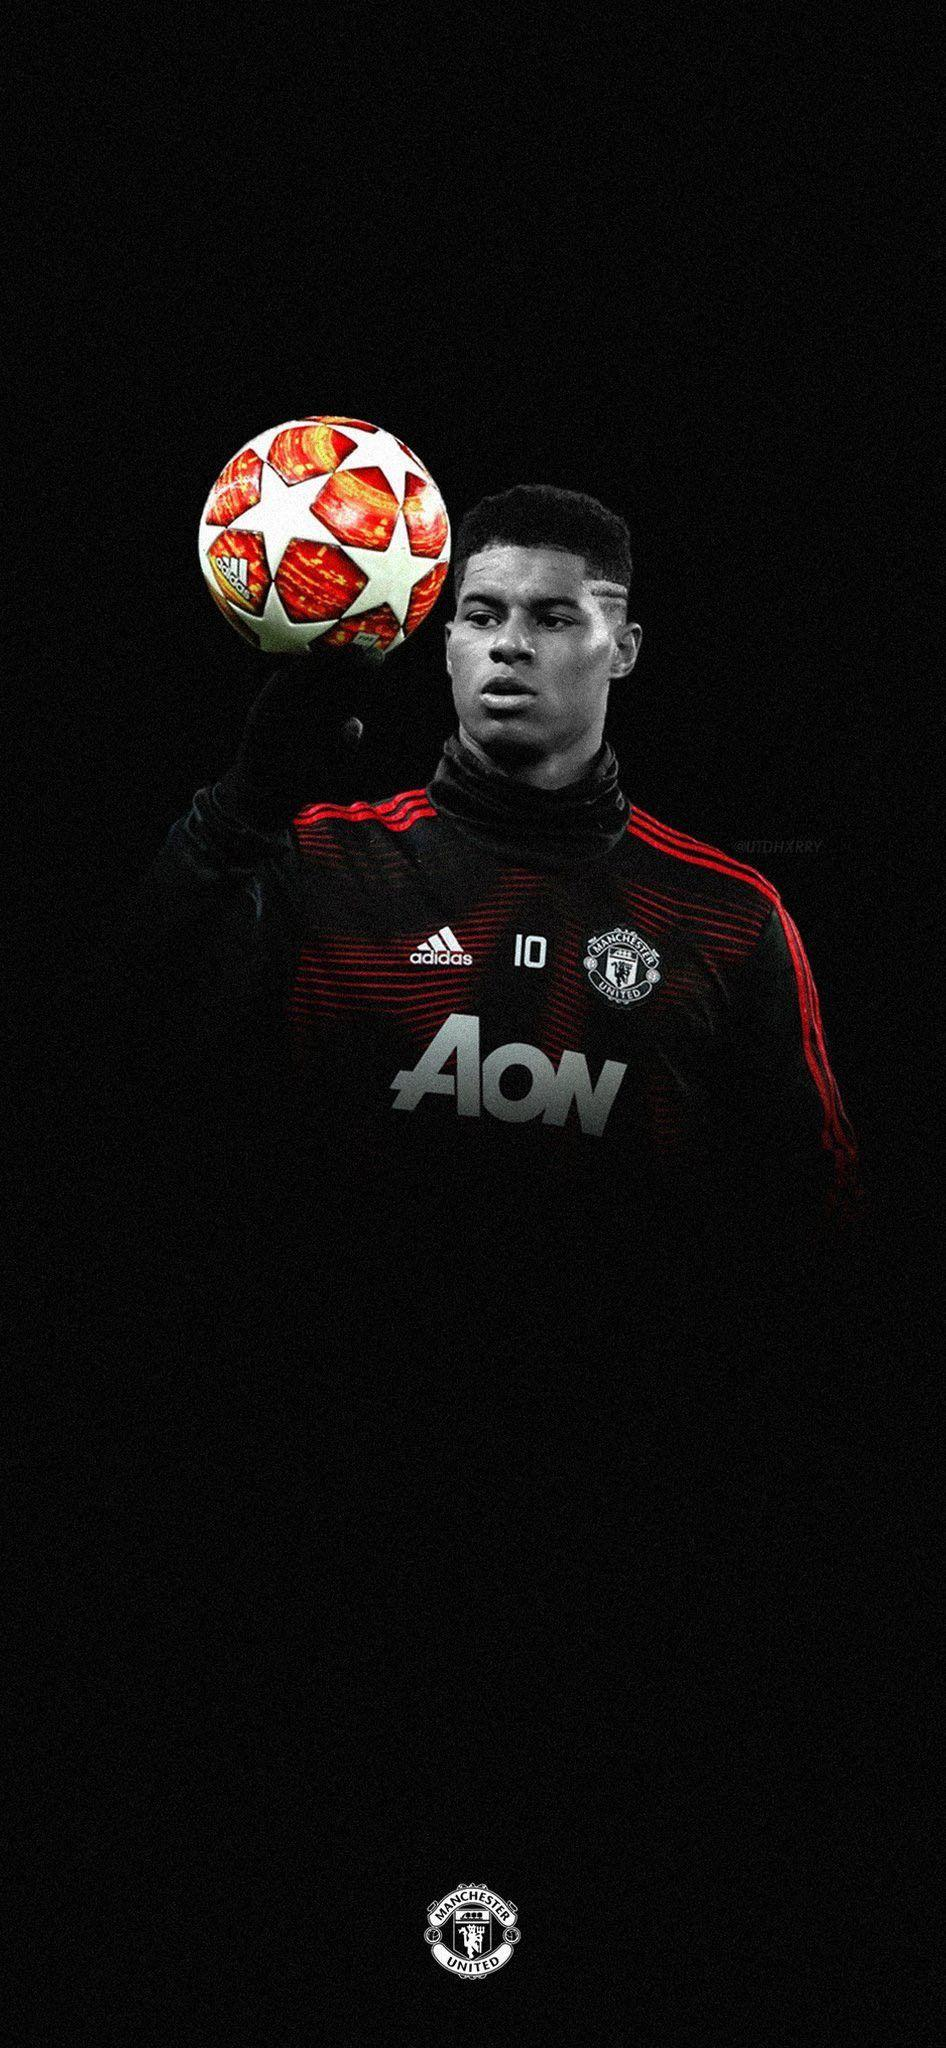 Rashford 2020 Wallpapers Wallpaper Cave